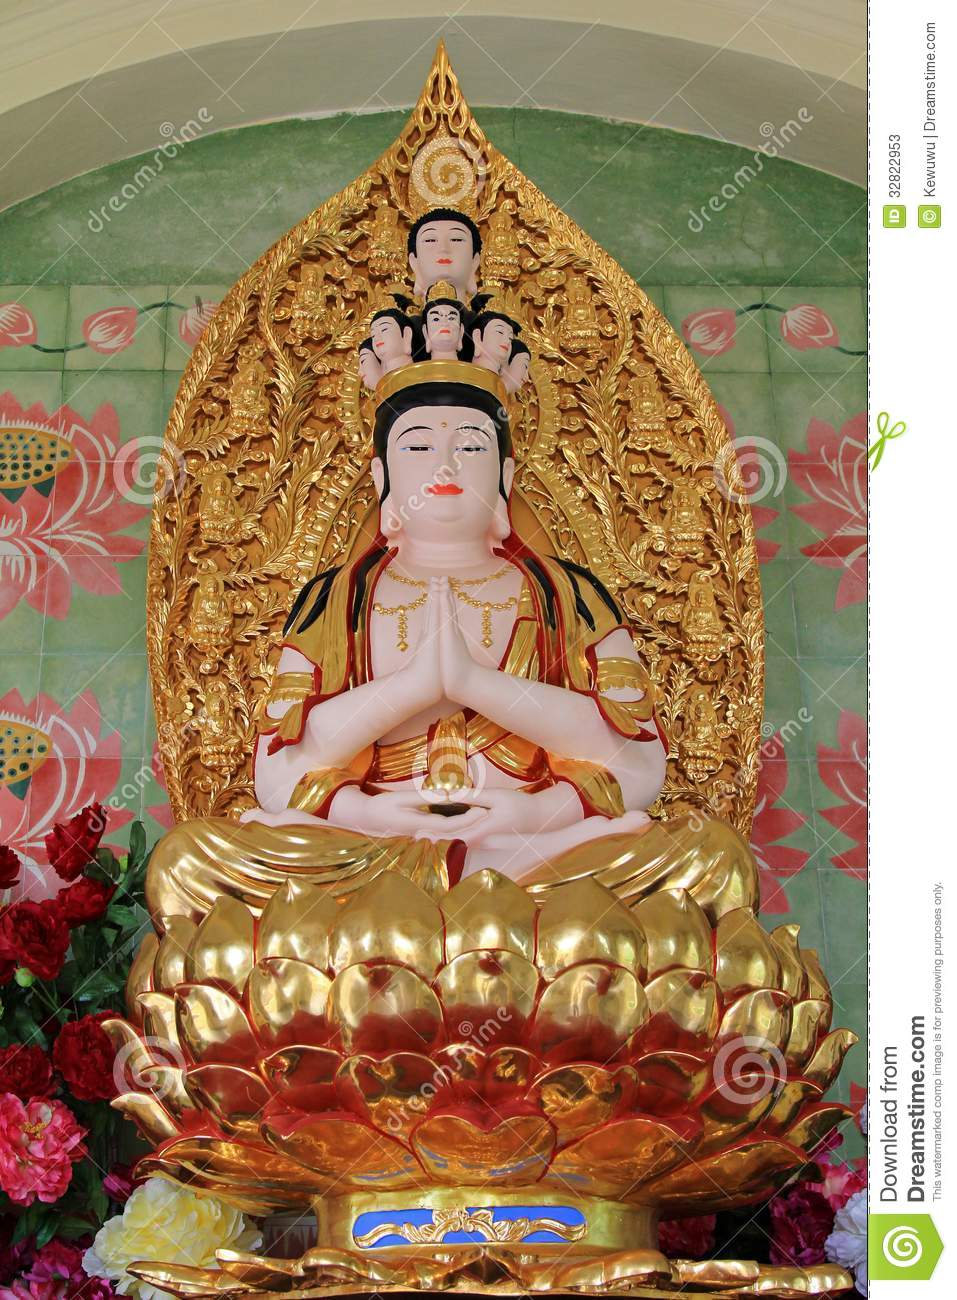 Statue Of Avalokitesvara Sitting On Lotus Flower Stock Image Image